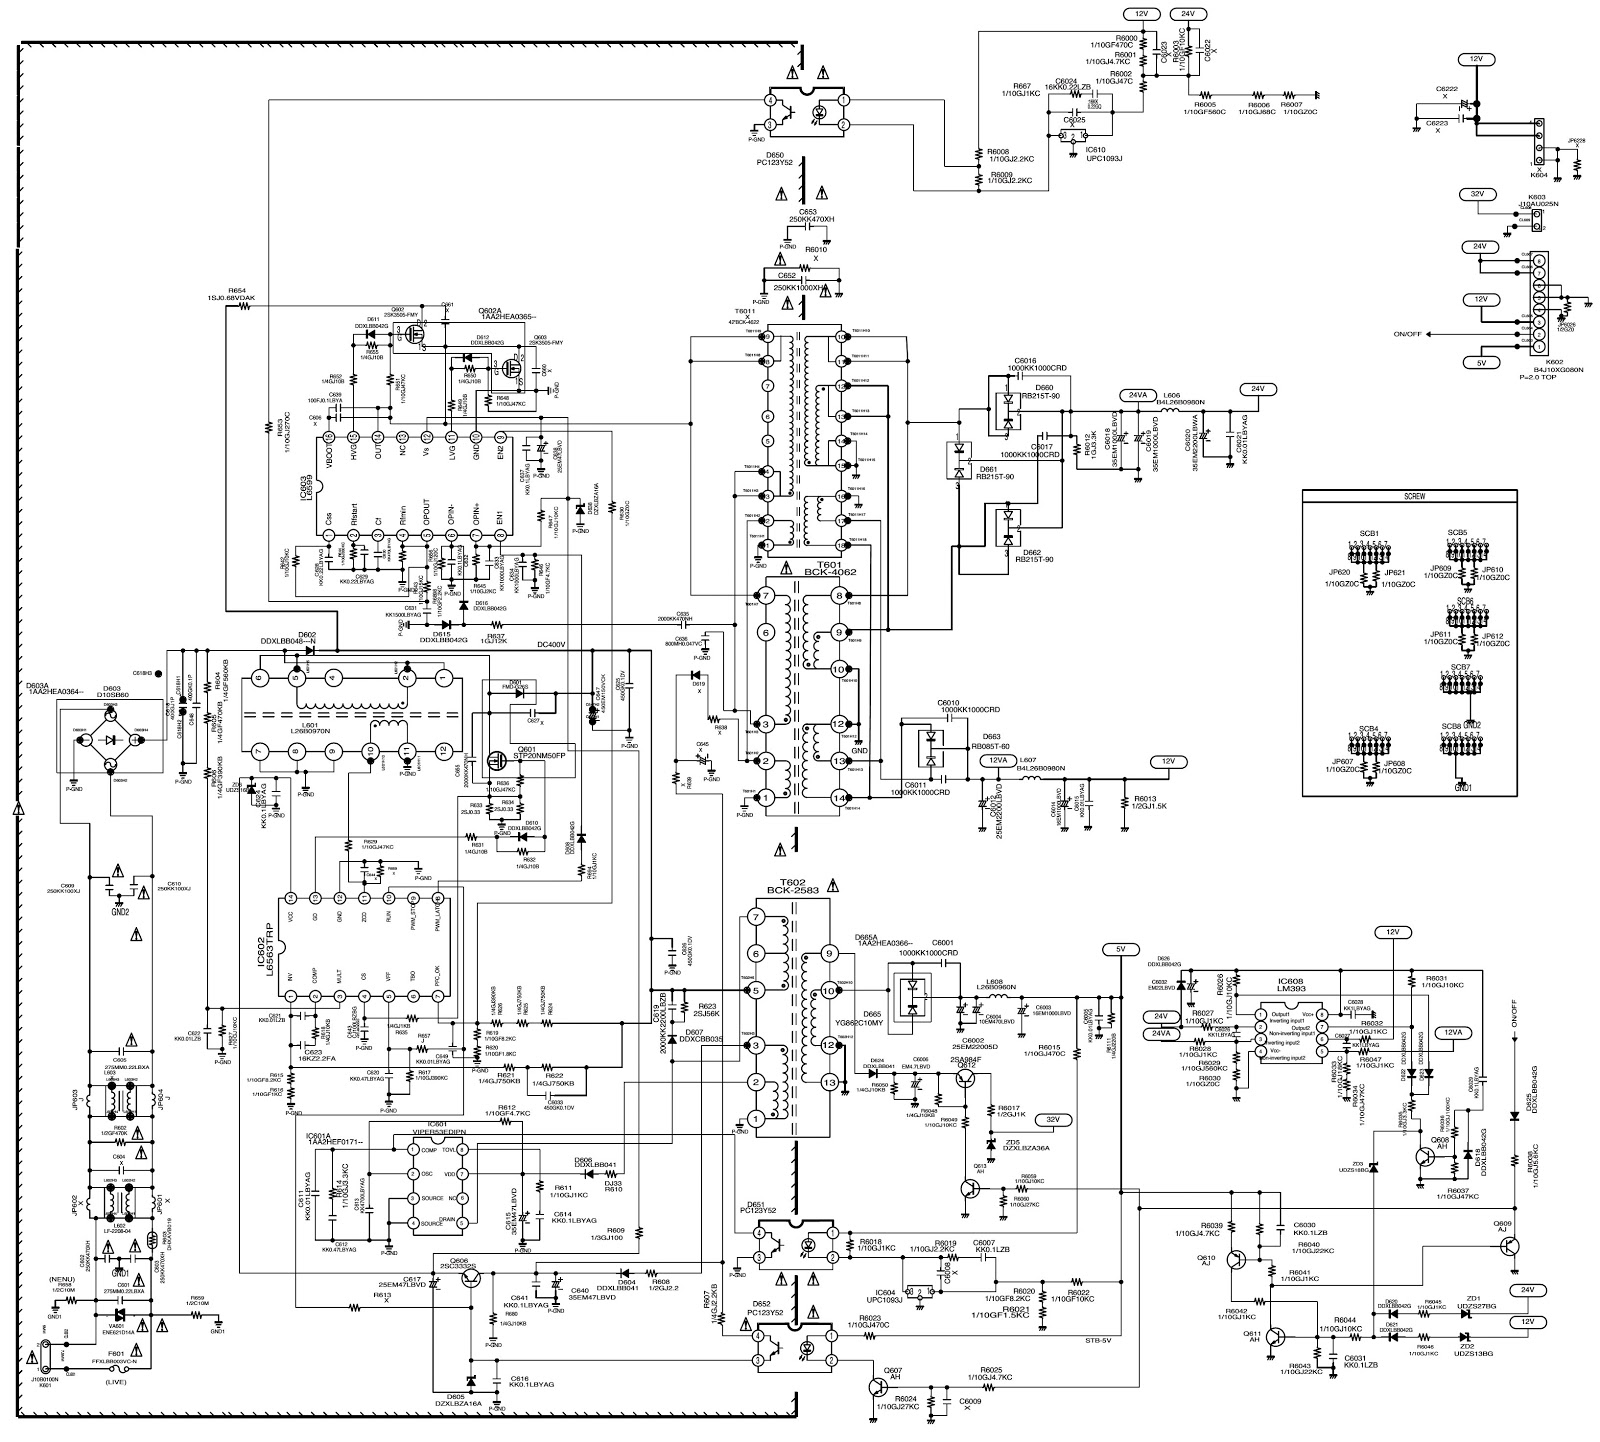 Microwave Oven Blower Motor Wiring Diagram